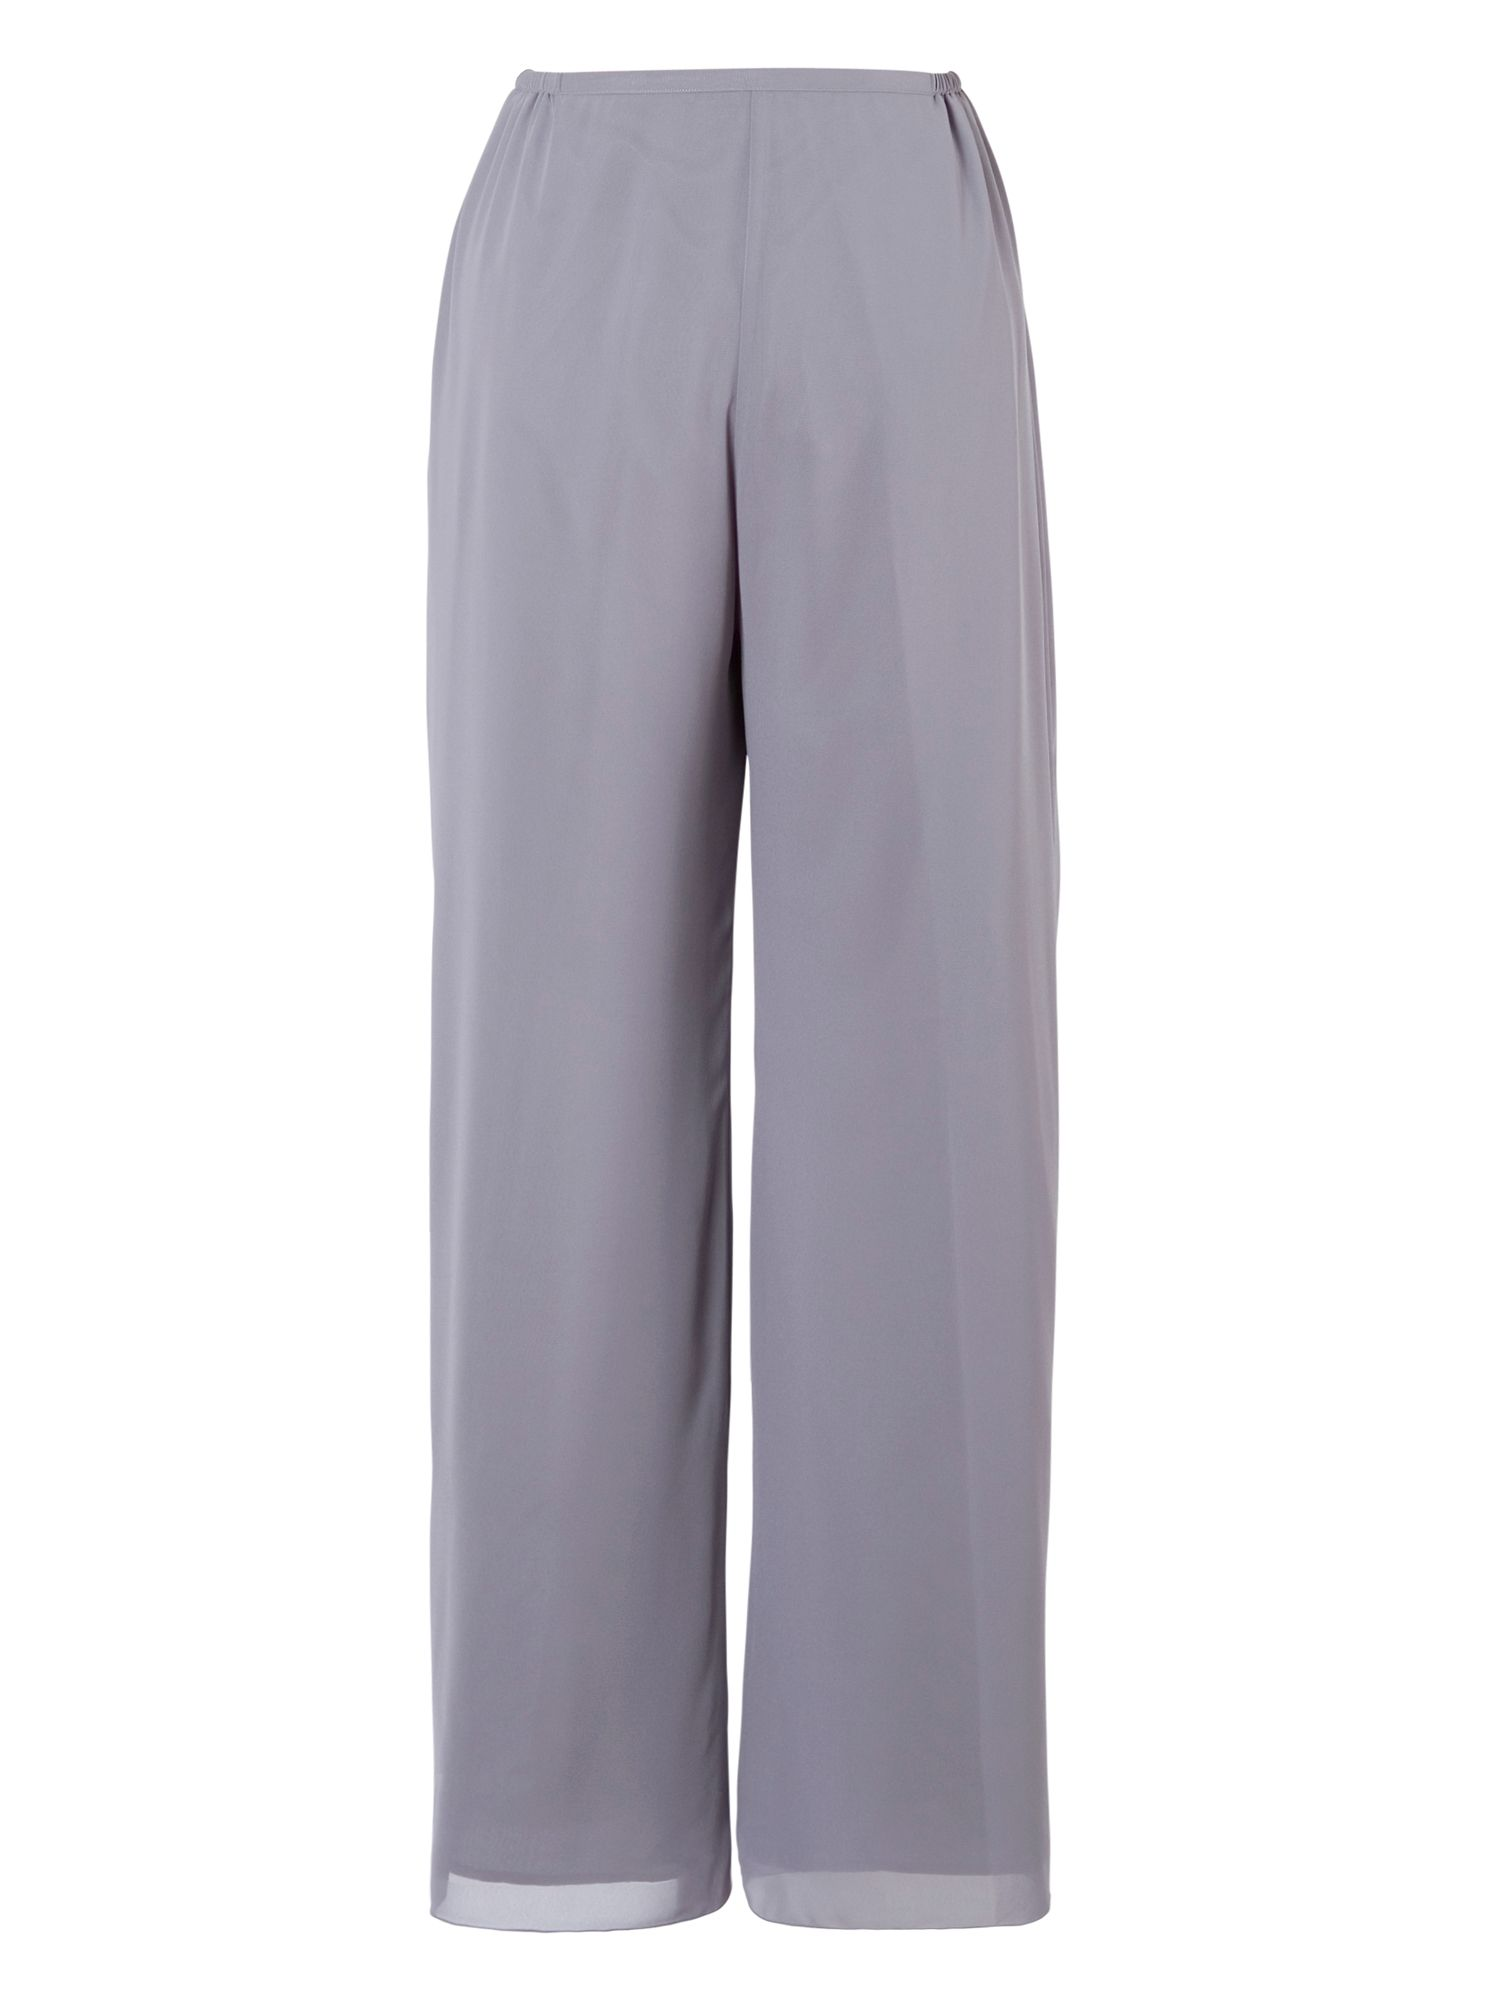 Chiffon Trouser With Spaghetti Belt Trim